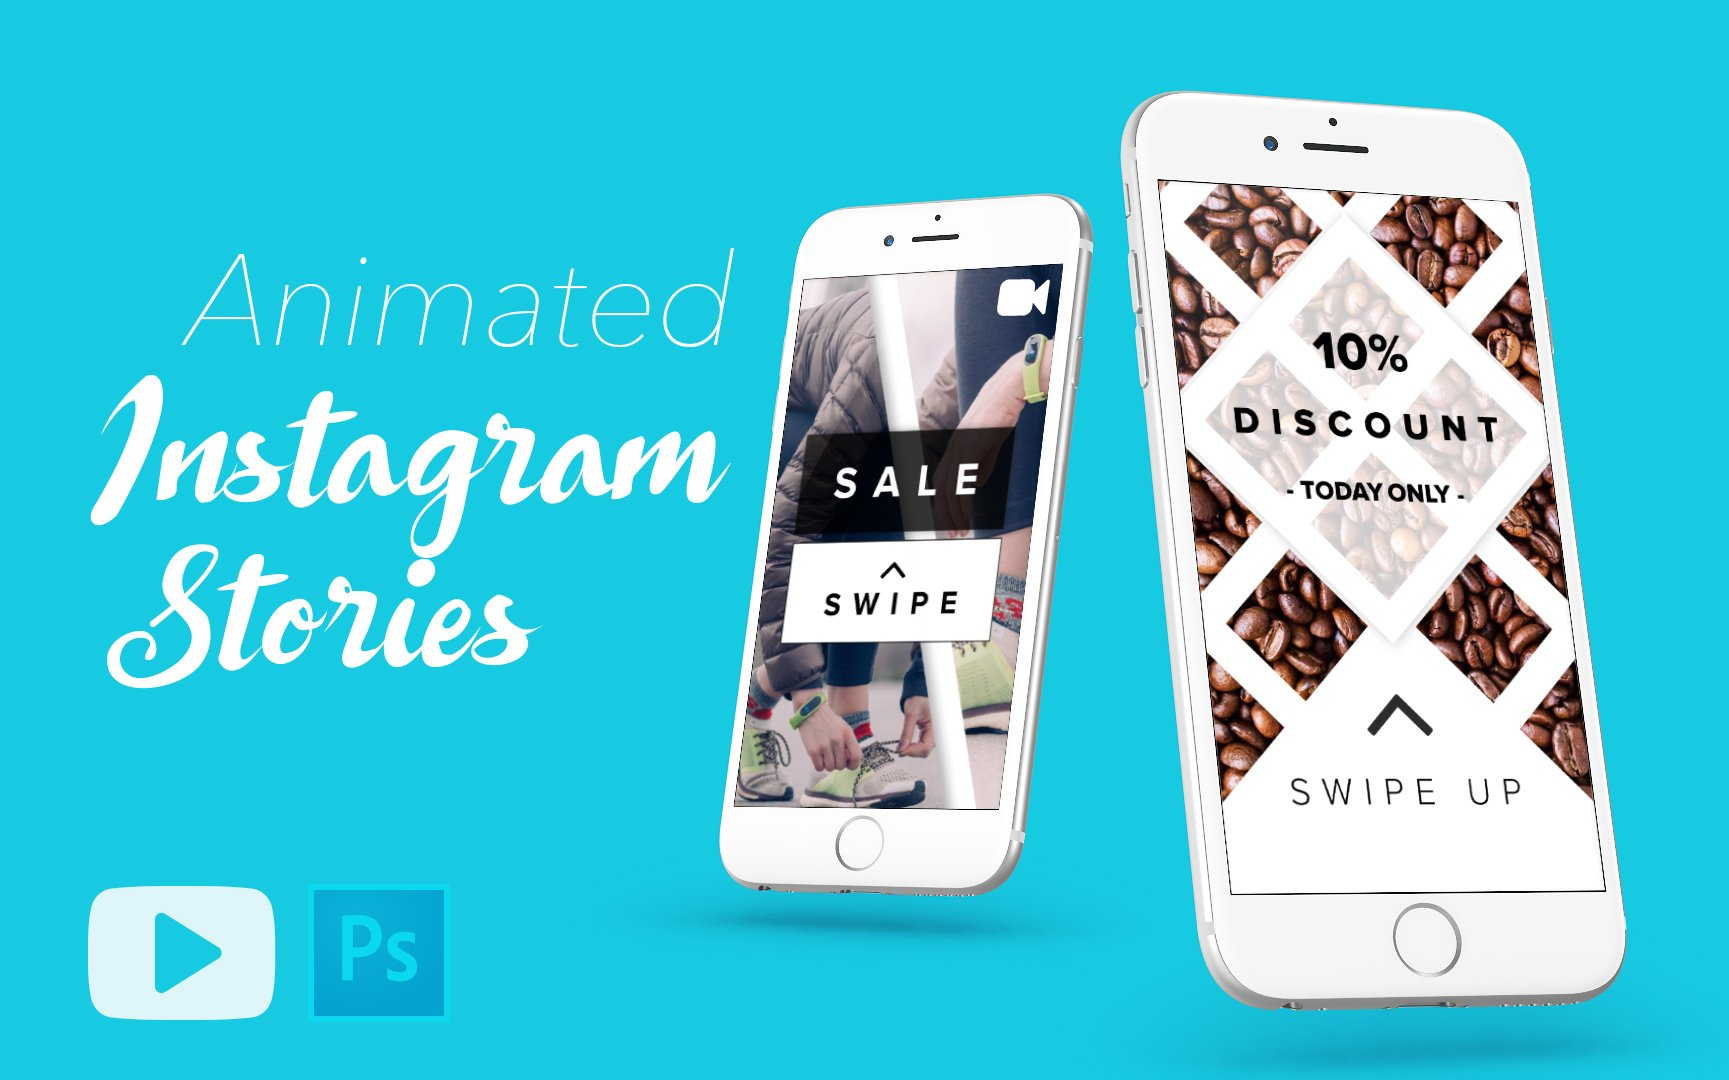 how to add animated instagram story